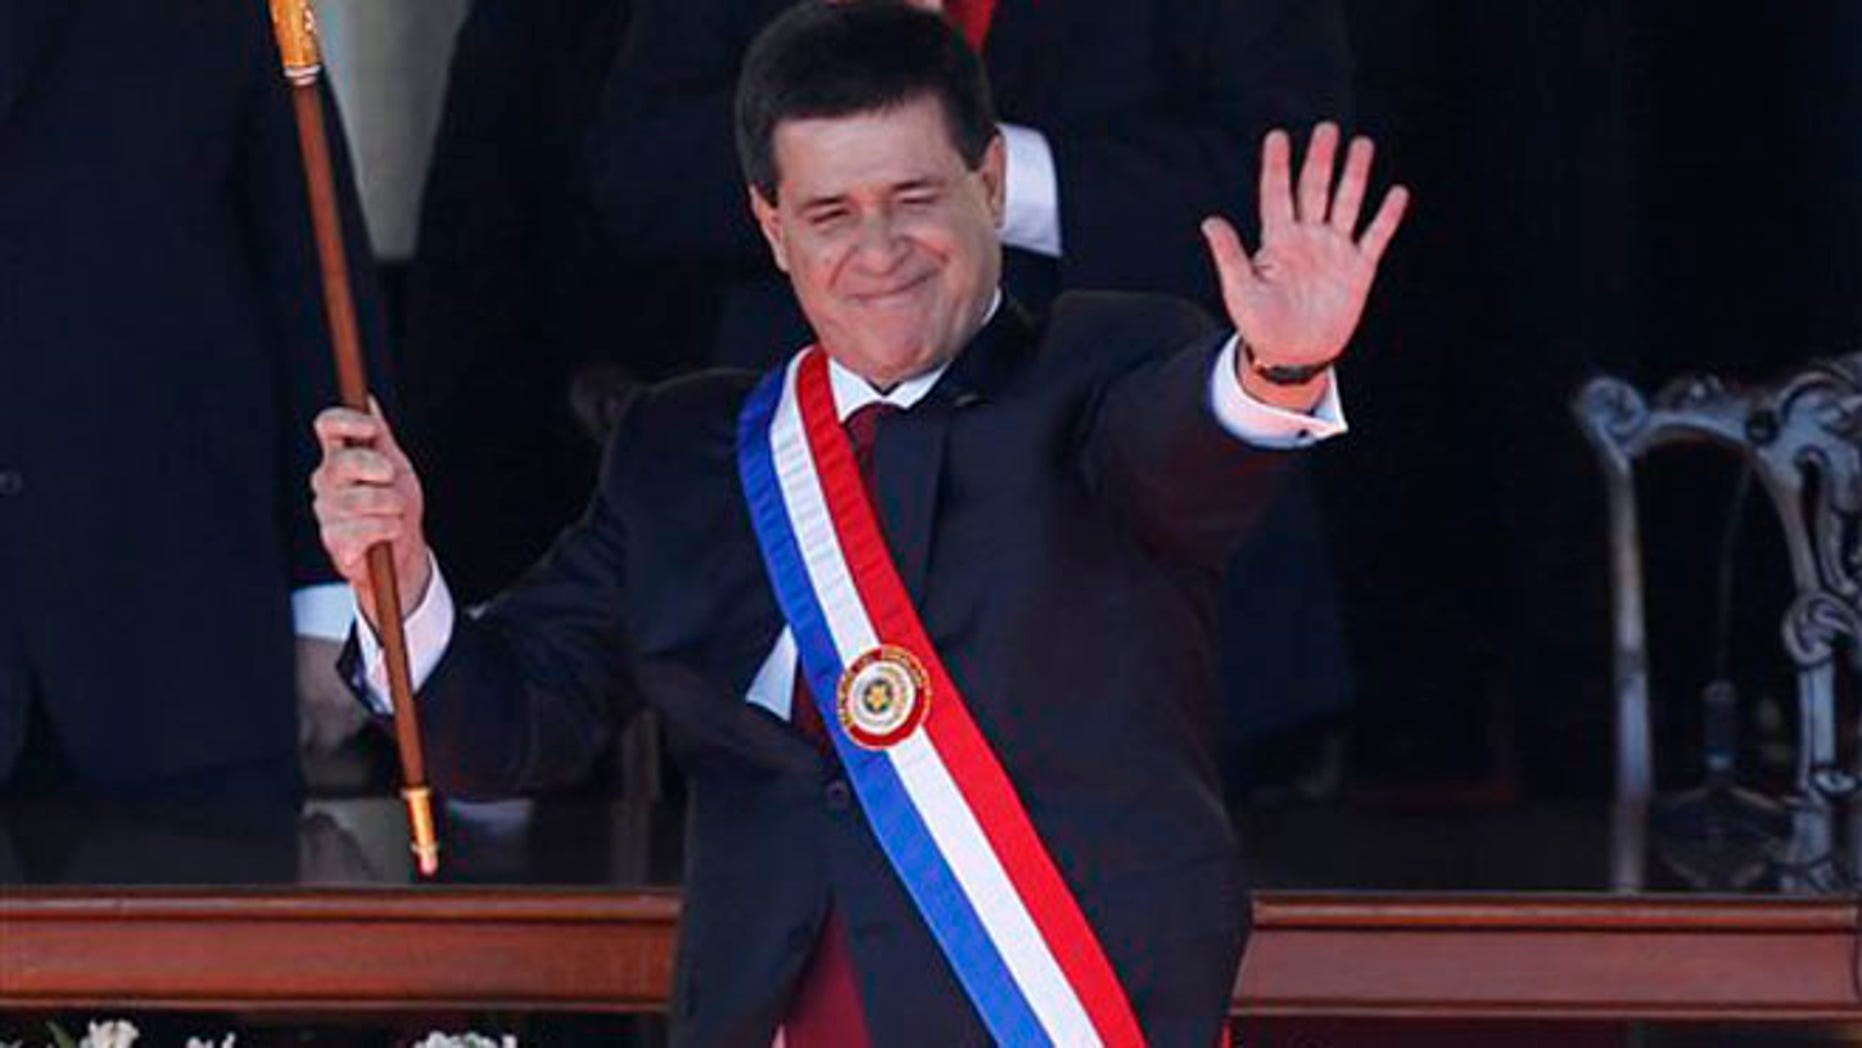 Paraguay's New President Horacio Cartes waves holding the presidential baton and wearing the presidential sash during his swearing-in ceremony at Palacio de Lopez presidential palace in Asuncion, Paraguay, Thursday, Aug. 15, 2013.